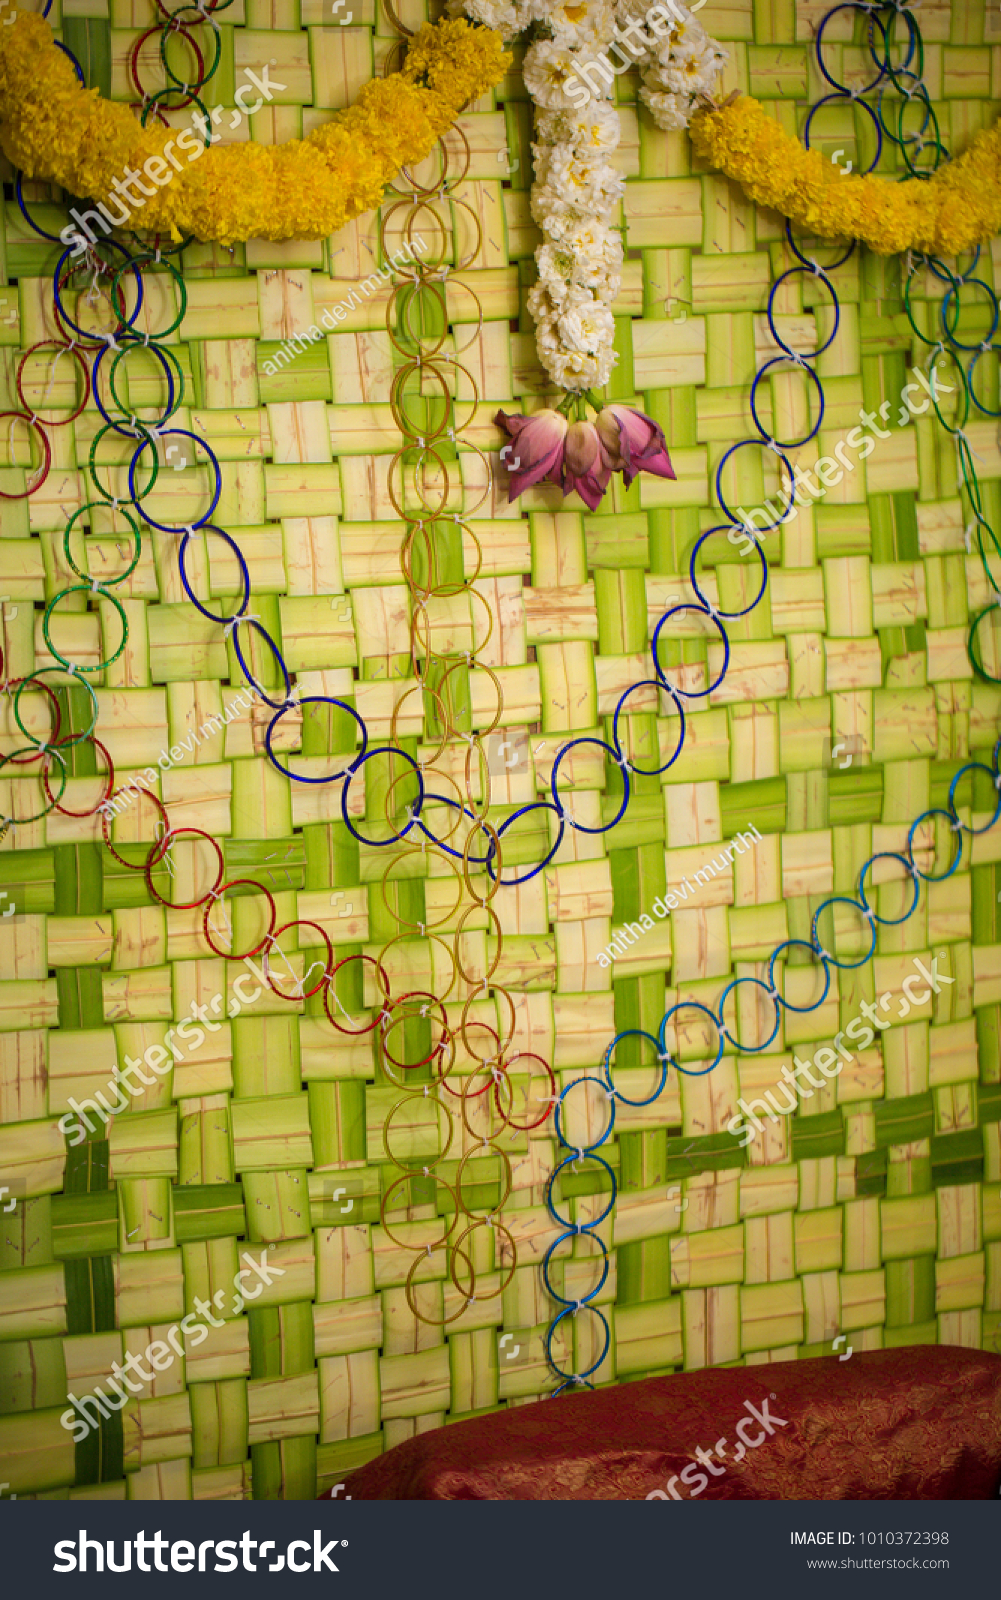 South Indian Decoration Baby Shower Festival Stock Photo Edit Now 1010372398